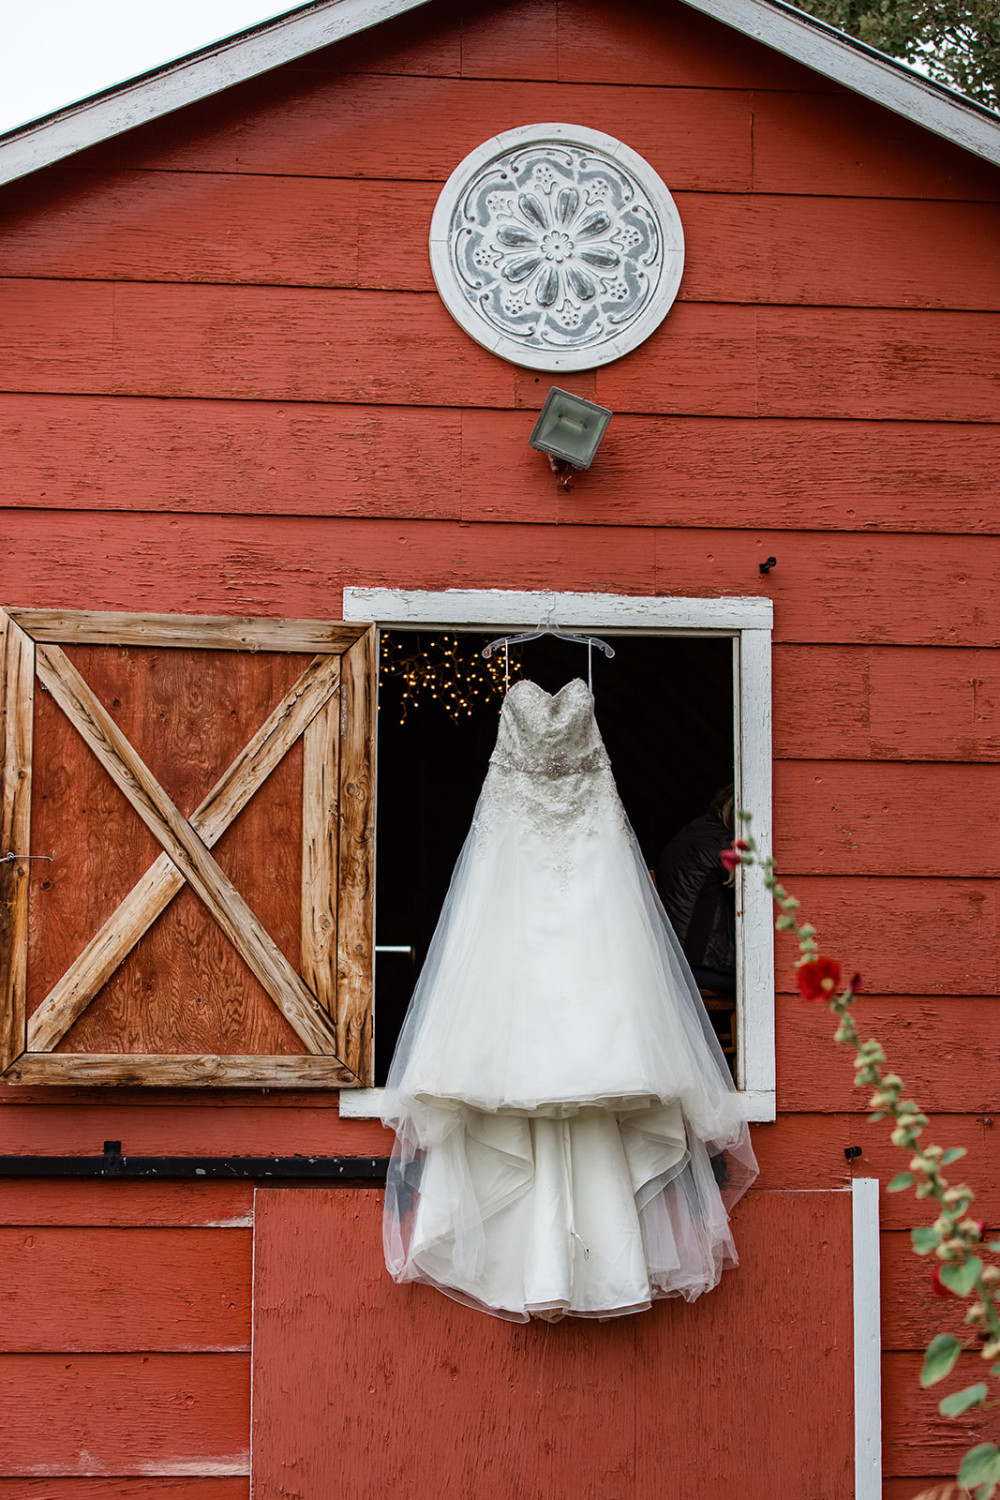 Wedding Dress hangs outside a rustic red barn wedding venue in Calgary